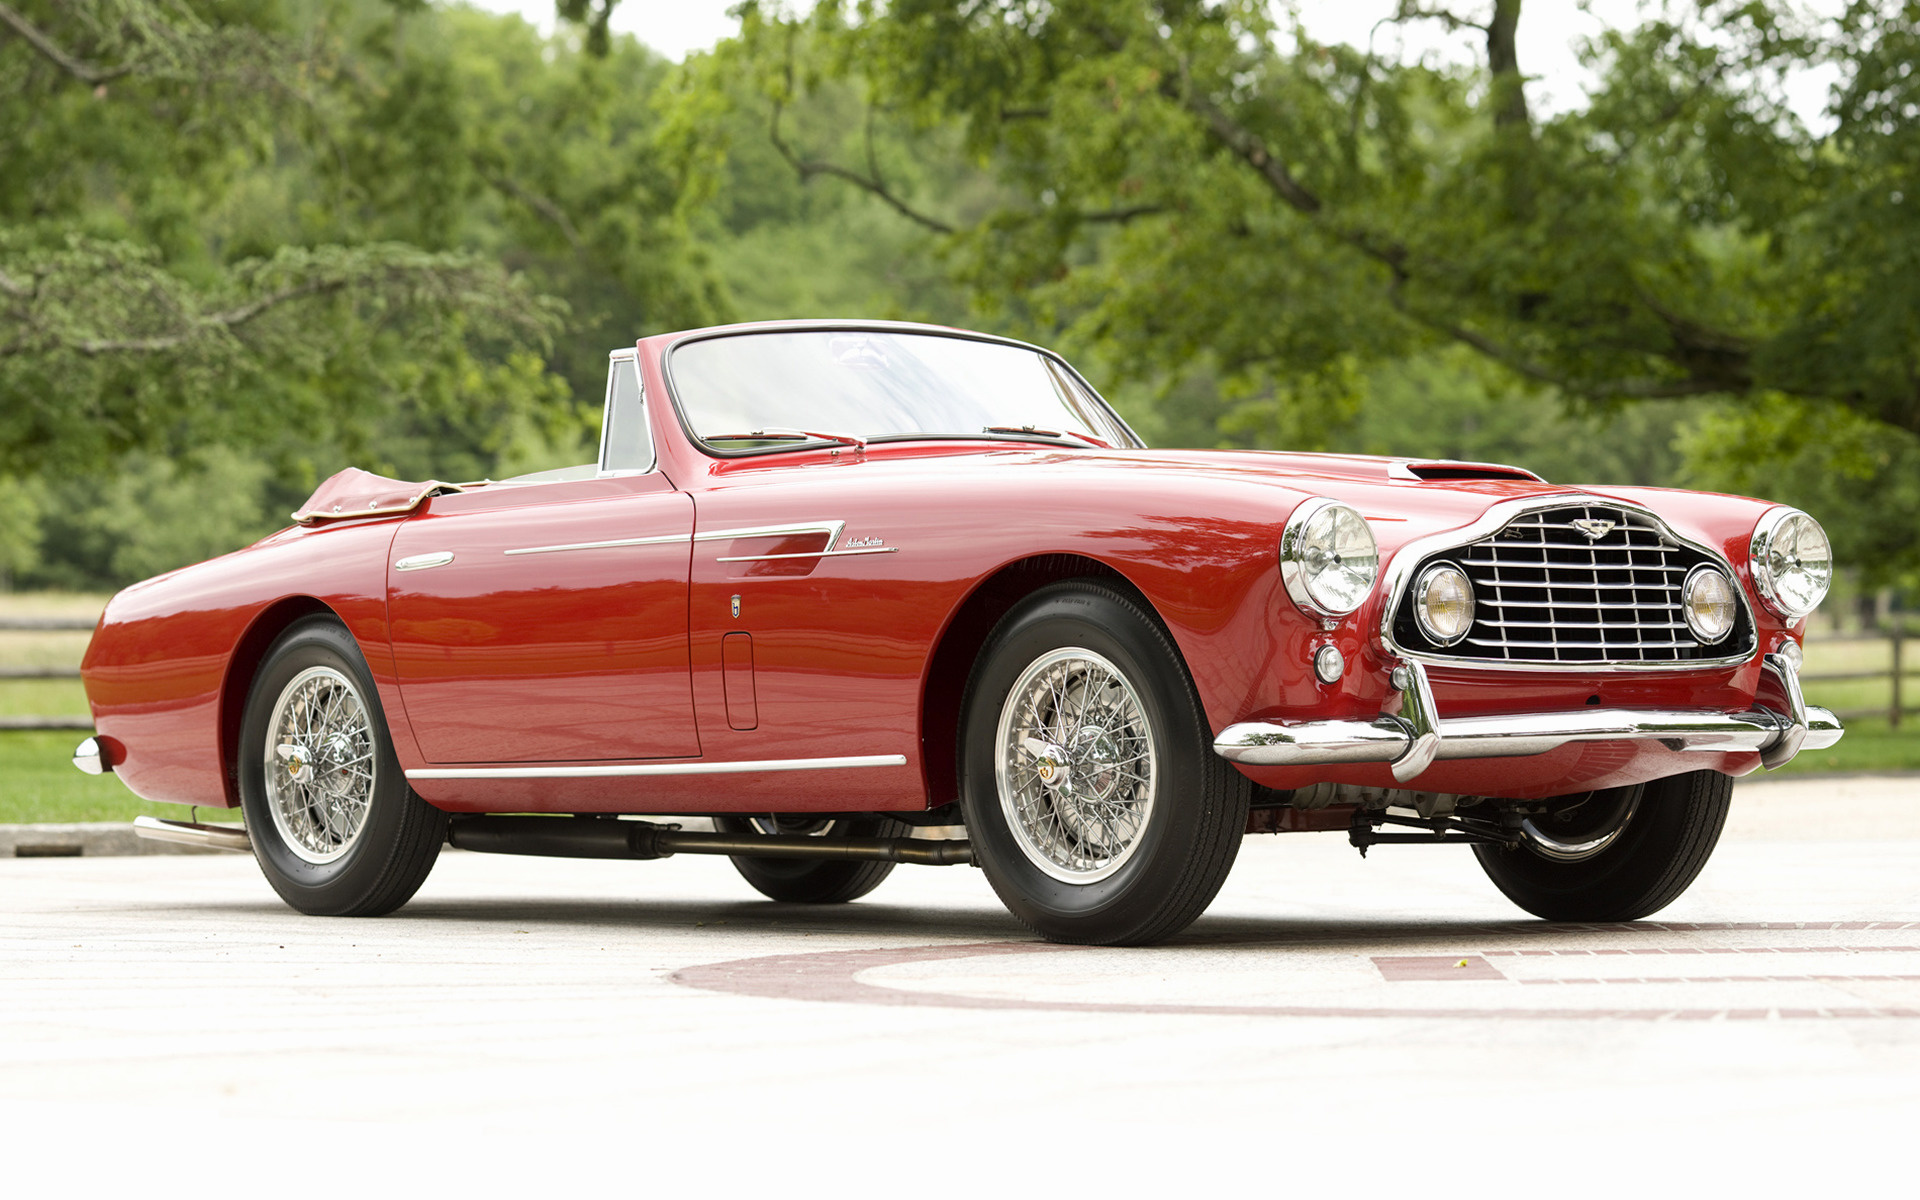 aston martin db2 4 drophead coupe by bertone lml 504 1953 wallpapers and hd images car pixel. Black Bedroom Furniture Sets. Home Design Ideas